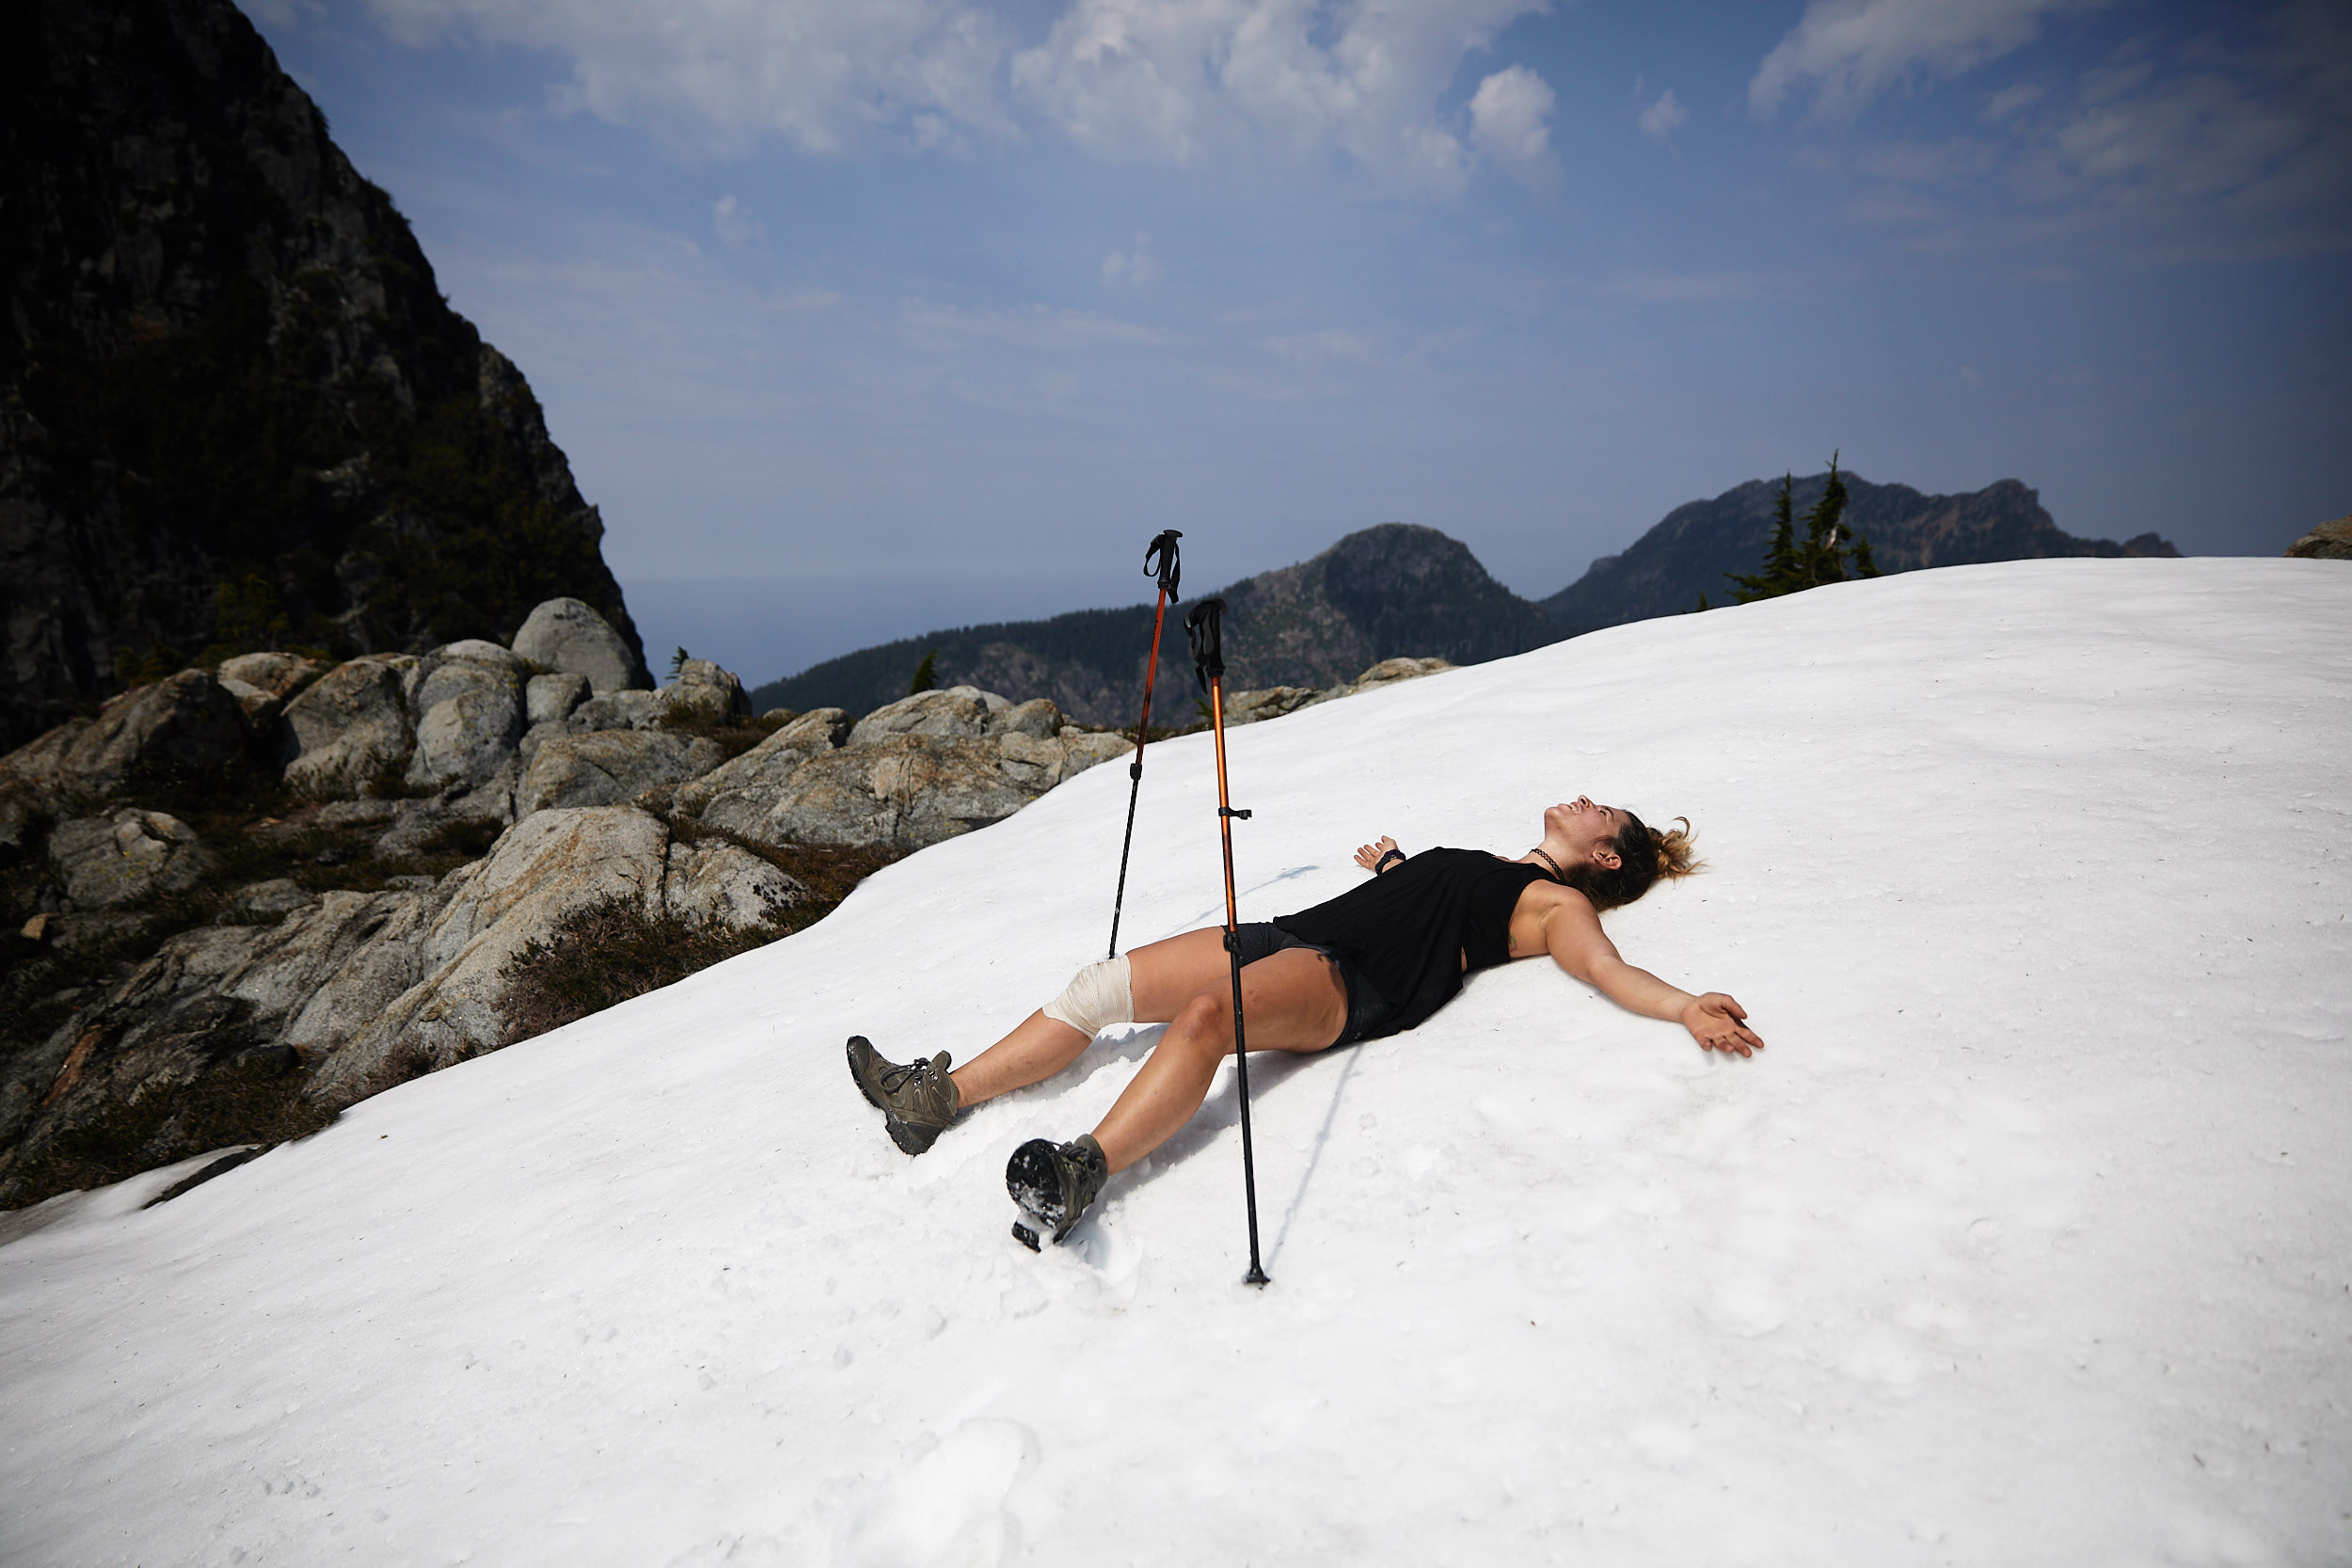 With all the elevation gain and extreme heat, the snow was amazingly refreshing.